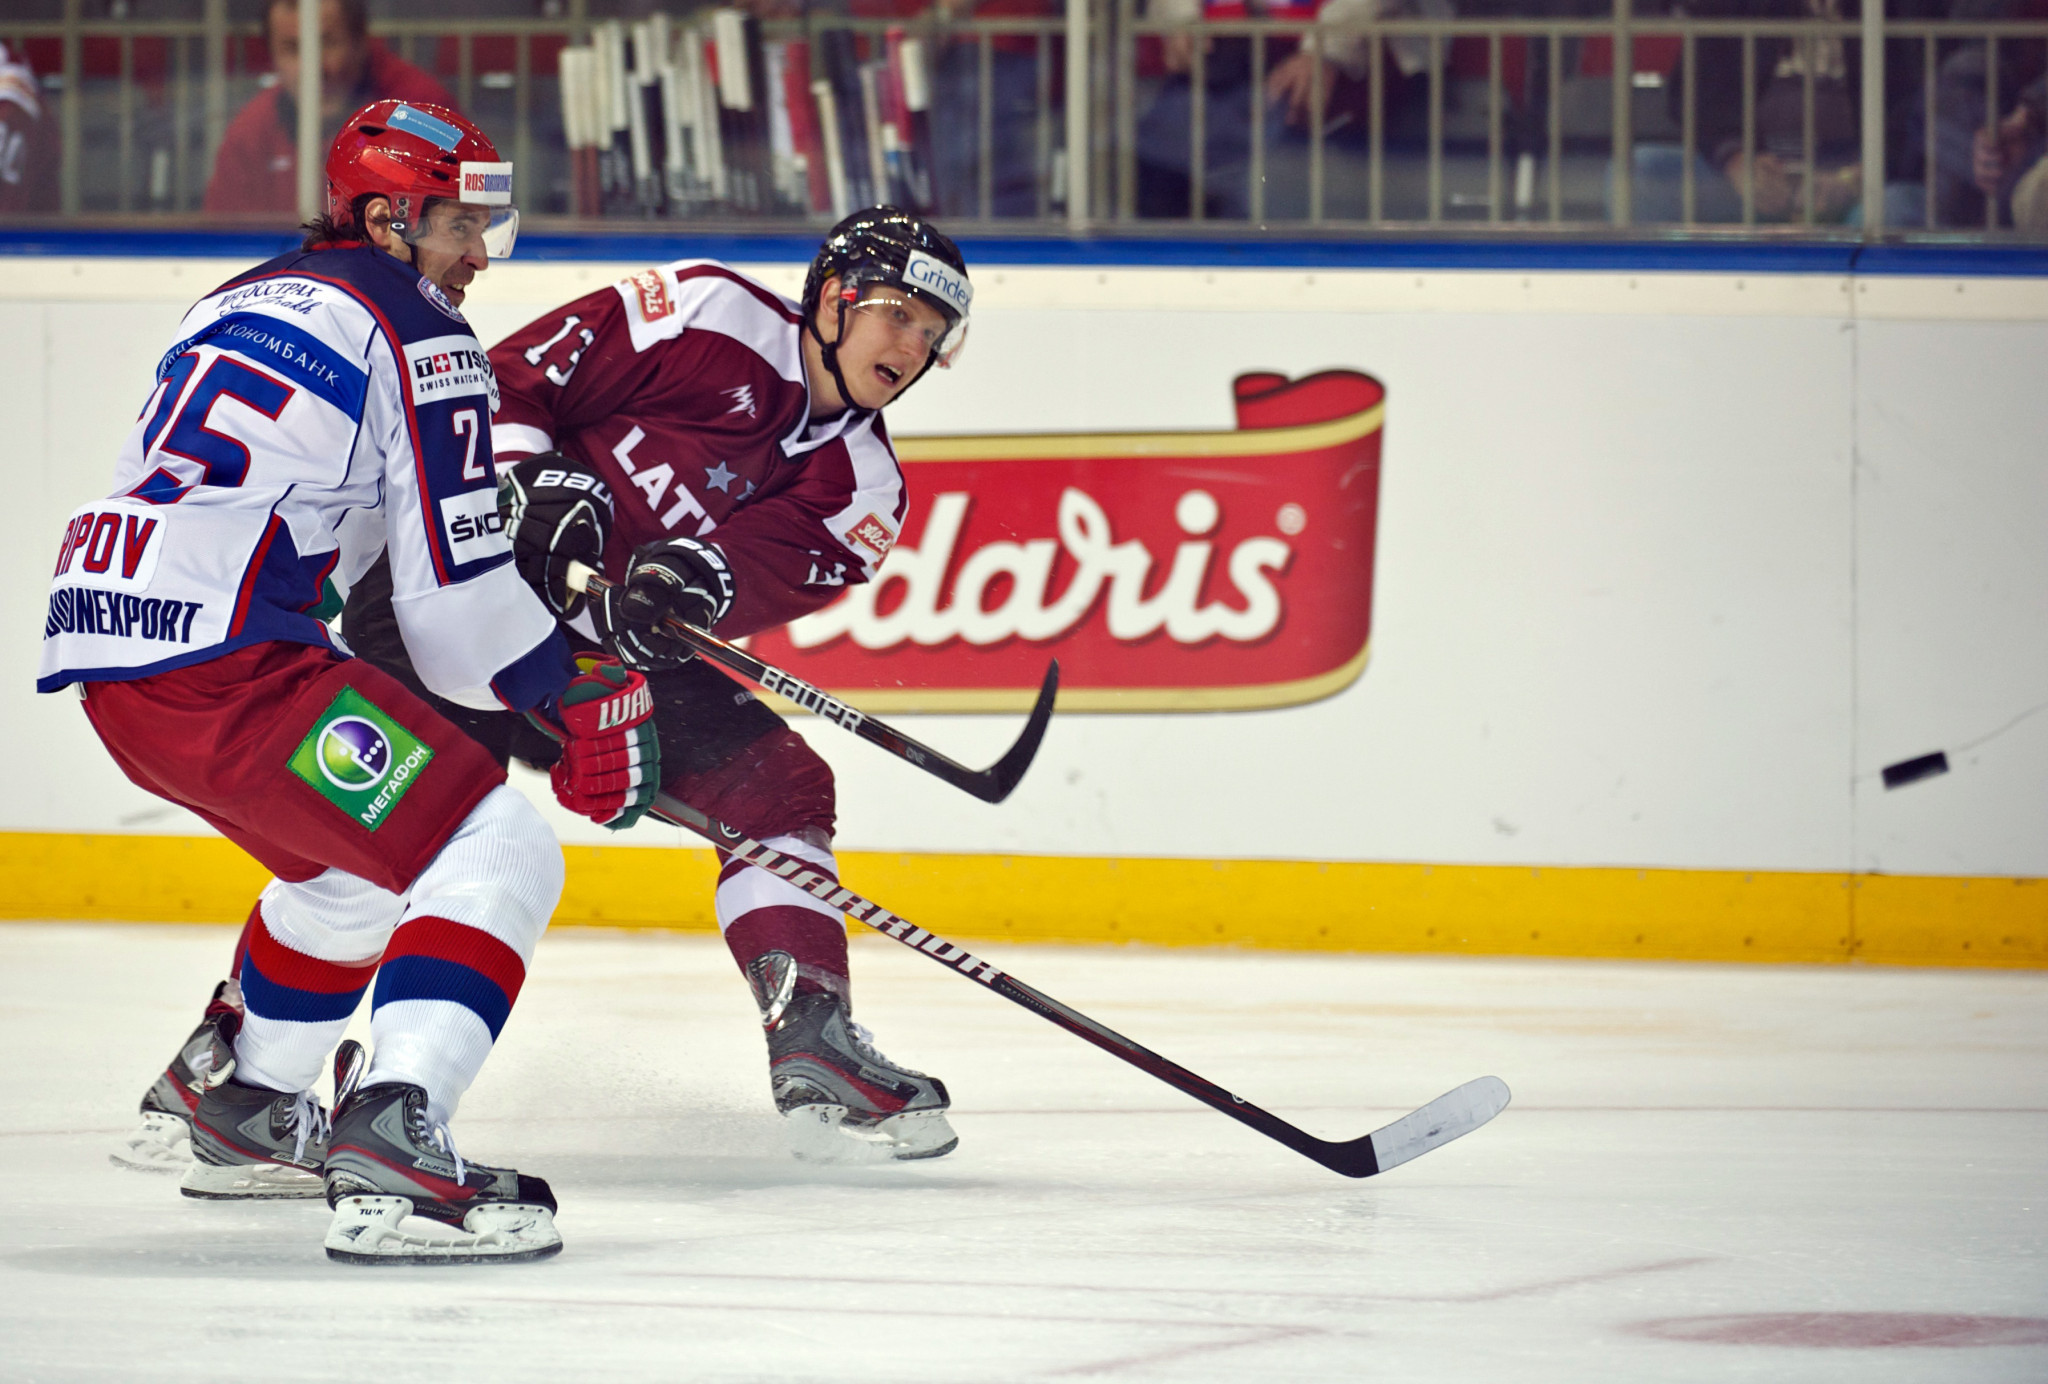 Zaripov free to return to ice hockey after IIHF reduce ban from two years to six months